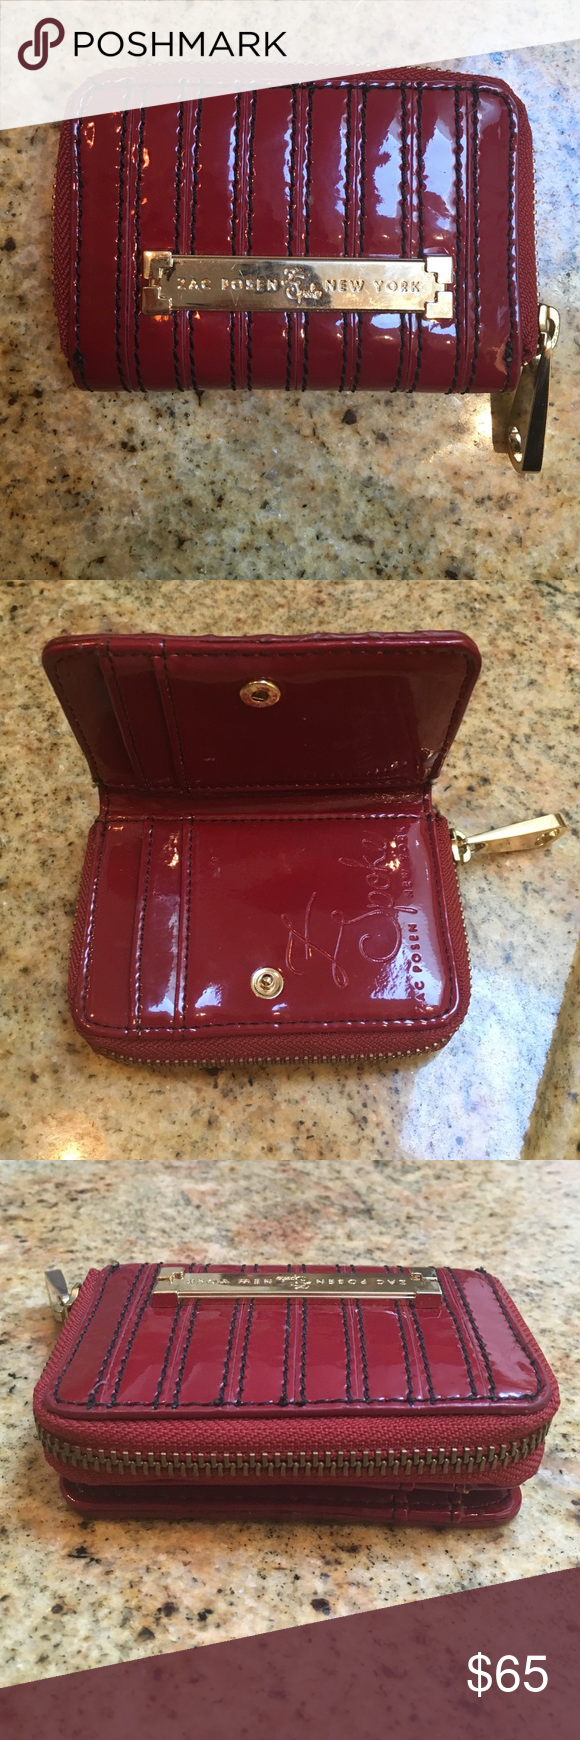 Red Zac Posen wallet Red and navy blue Zac Posen wallet with 4 credit card slots and a zippered coin purse Bags Wallets